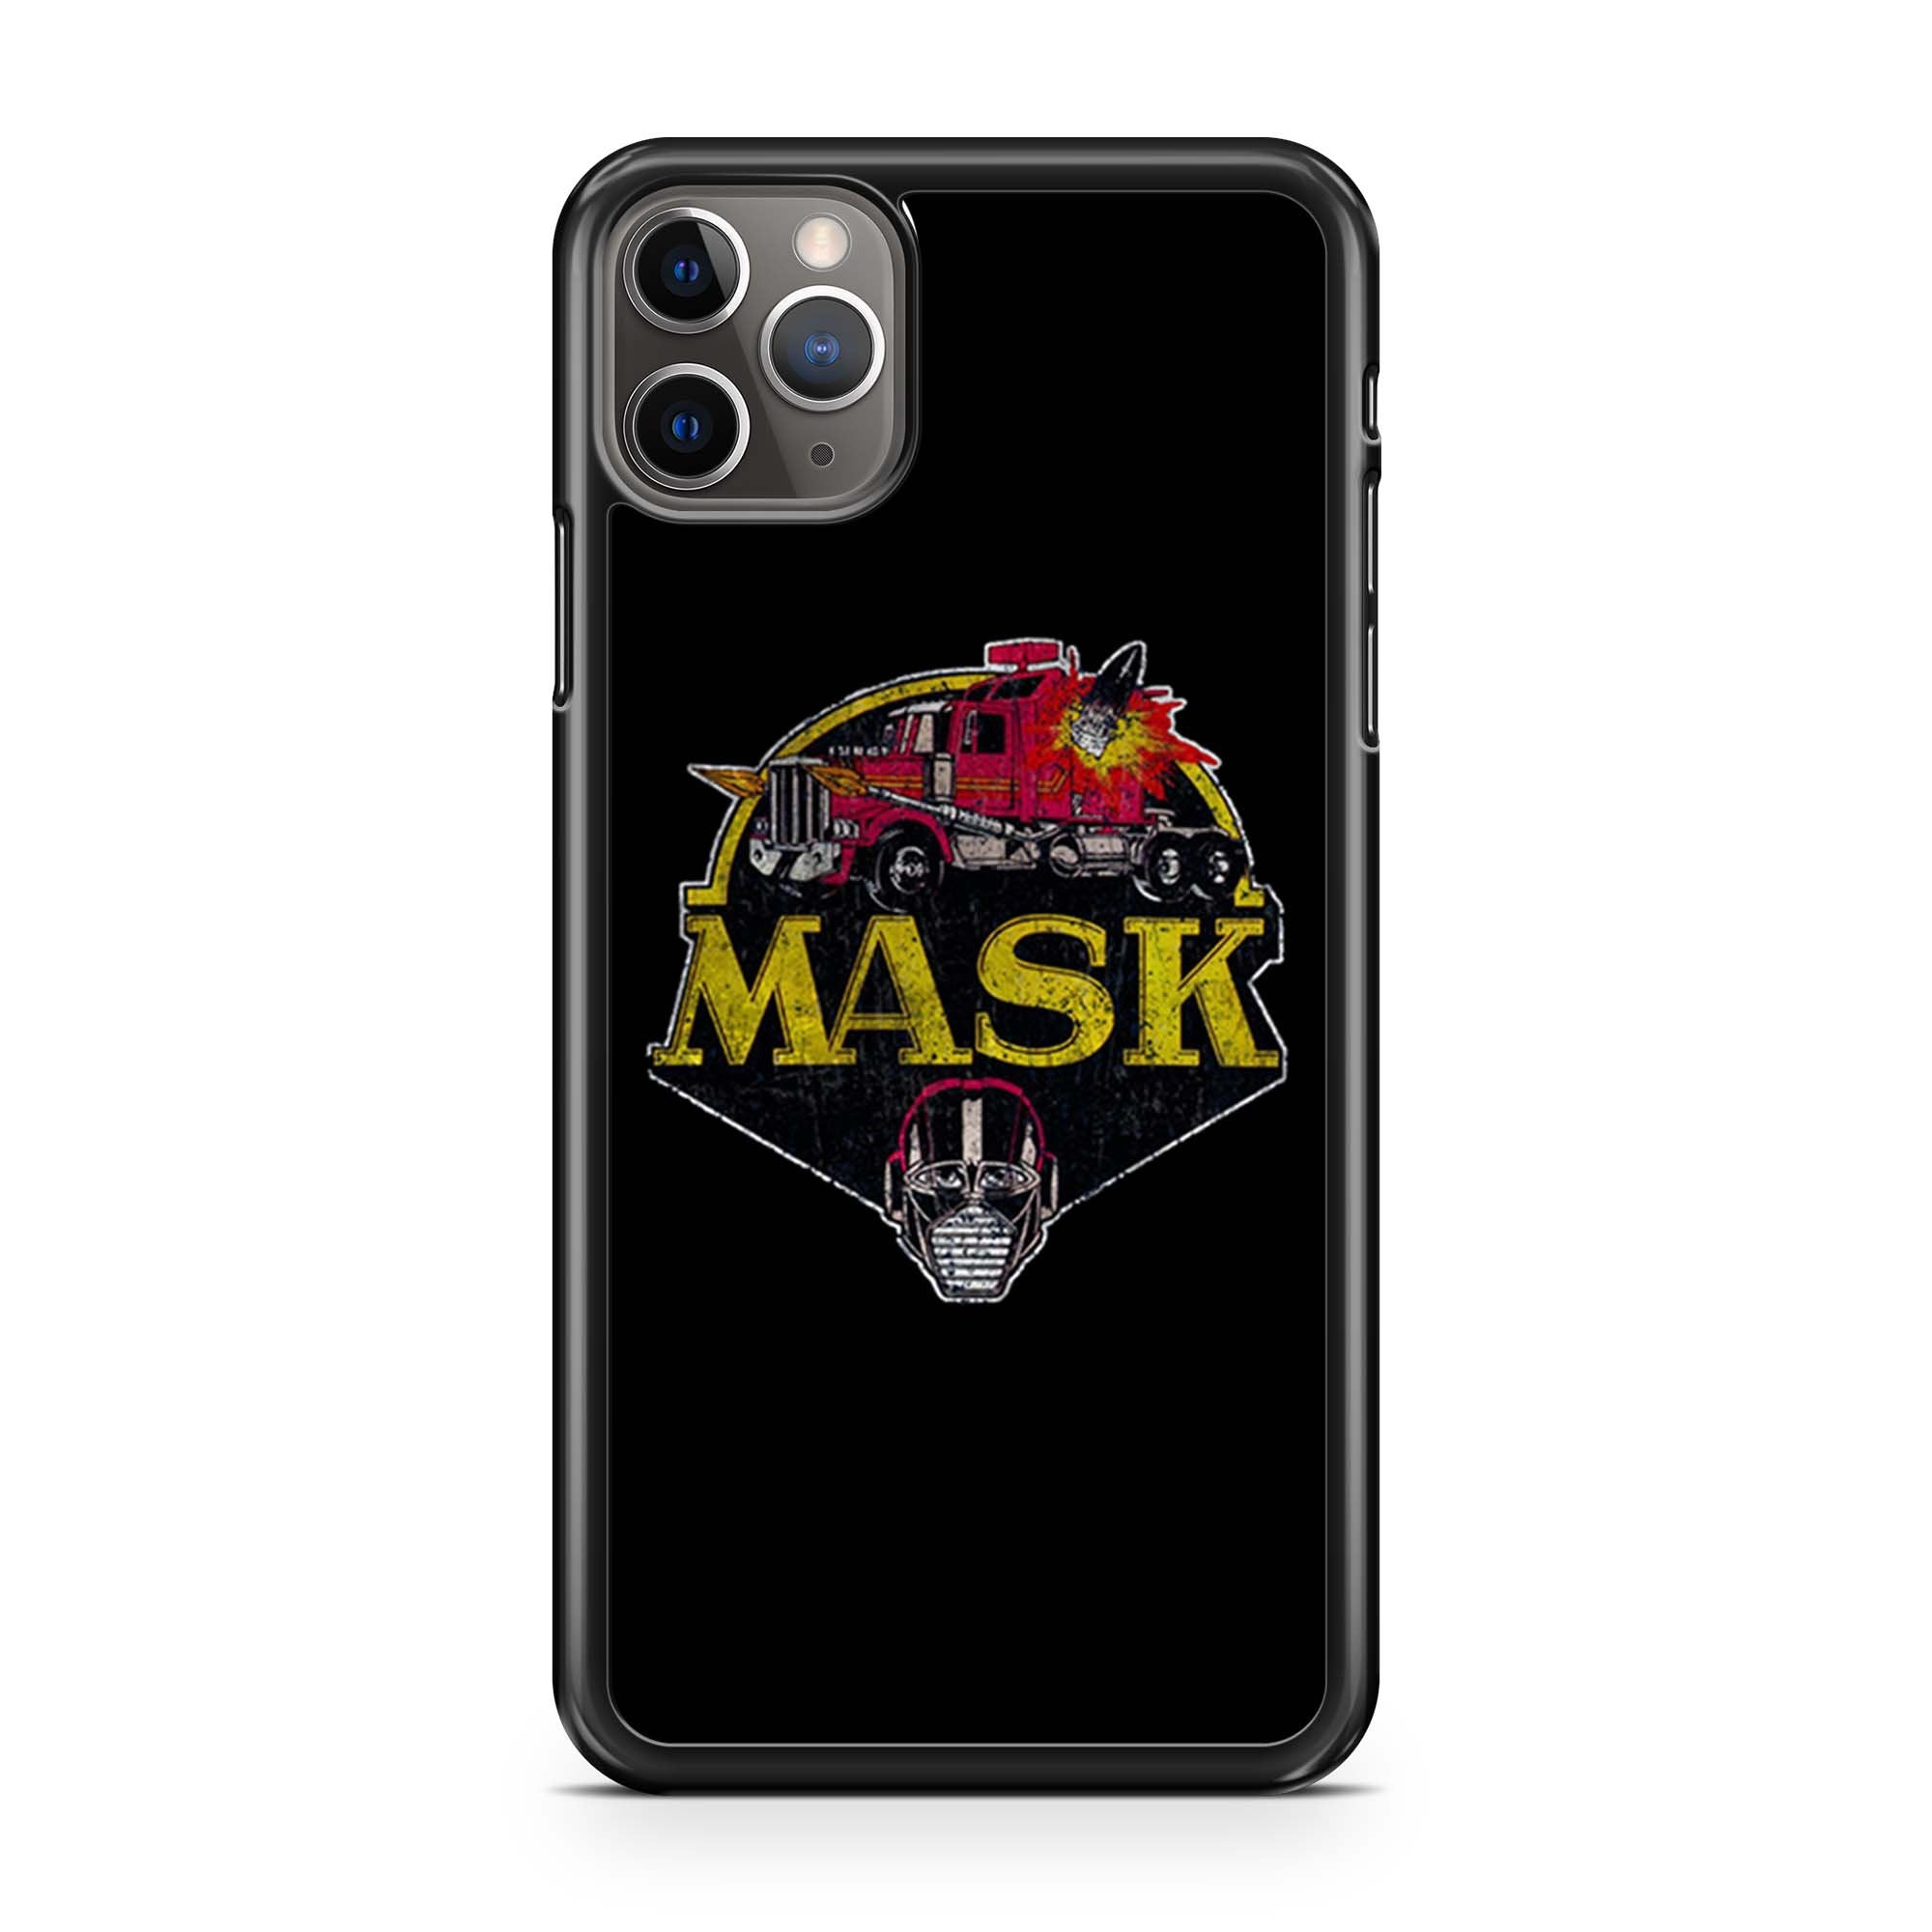 Mask Vintage Logo iPhone 11 Pro Max Case